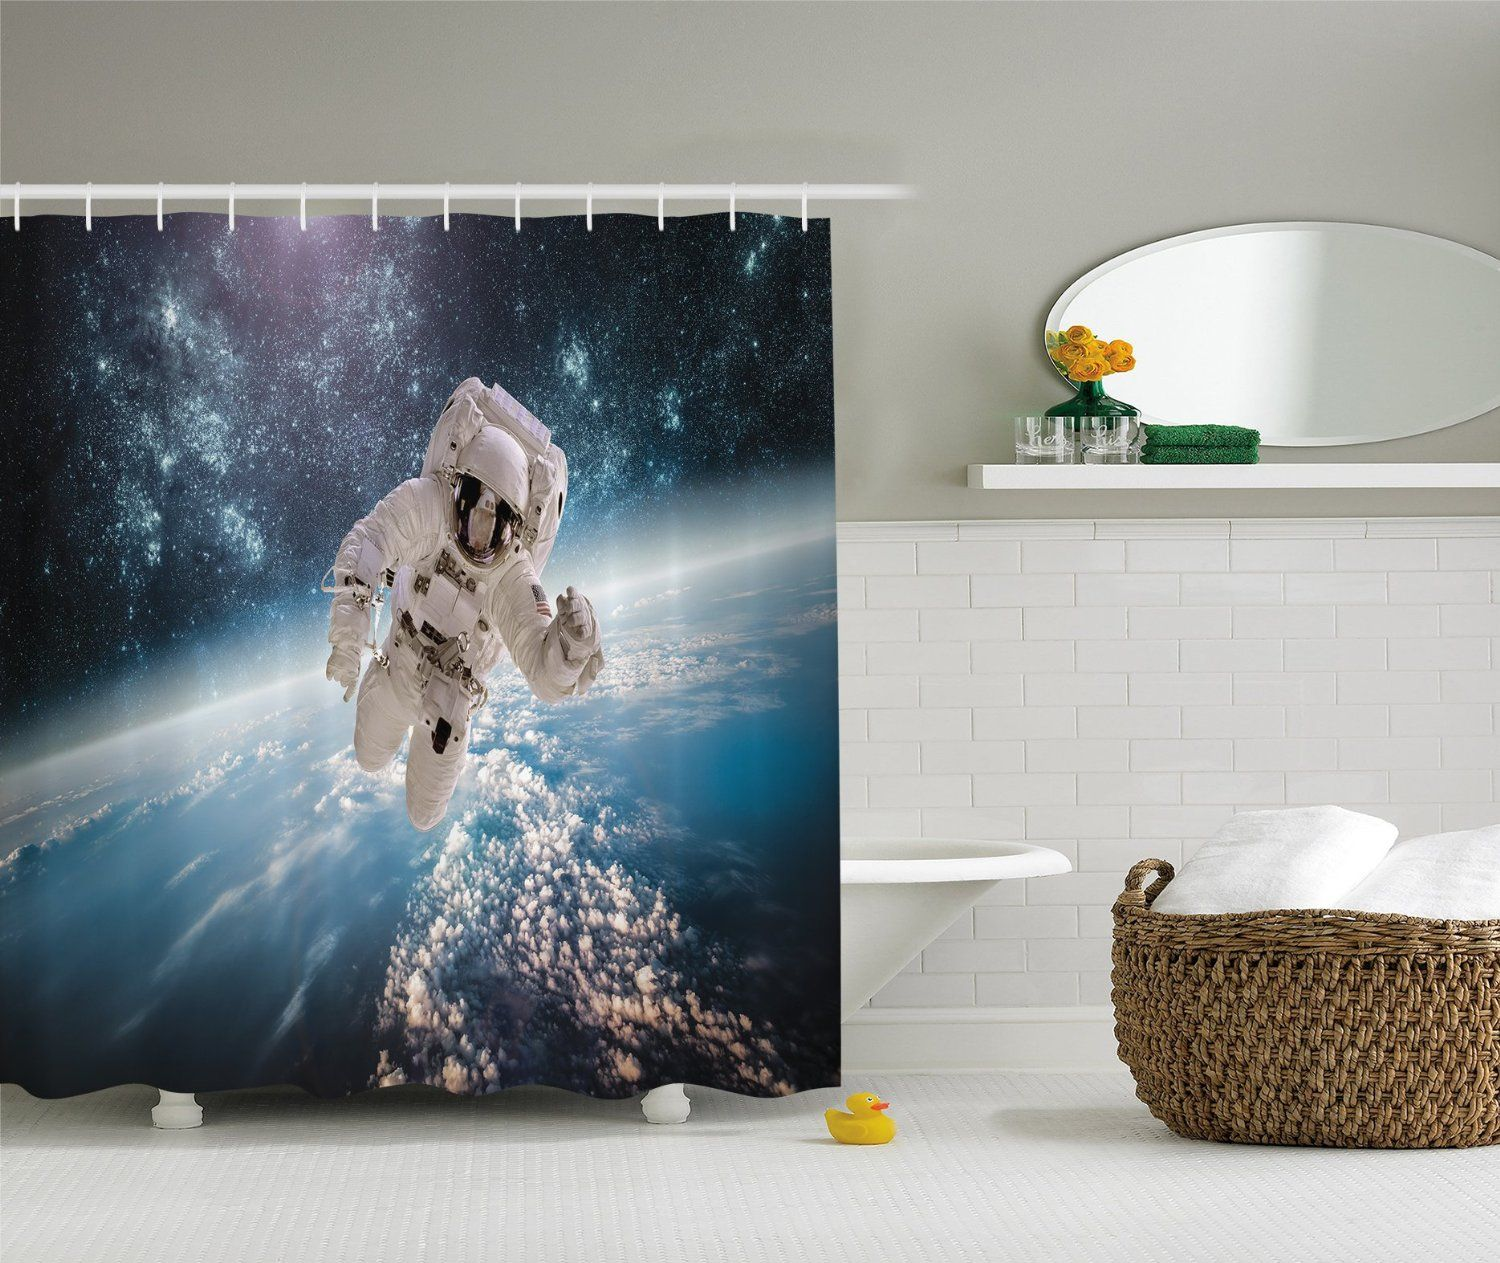 Amazon Com Astronaut Outer Space Planet Earth Digital Fabric Shower Curtain Exclusive To Your Curtain C Space Gift Outer Space Planets Fabric Shower Curtains